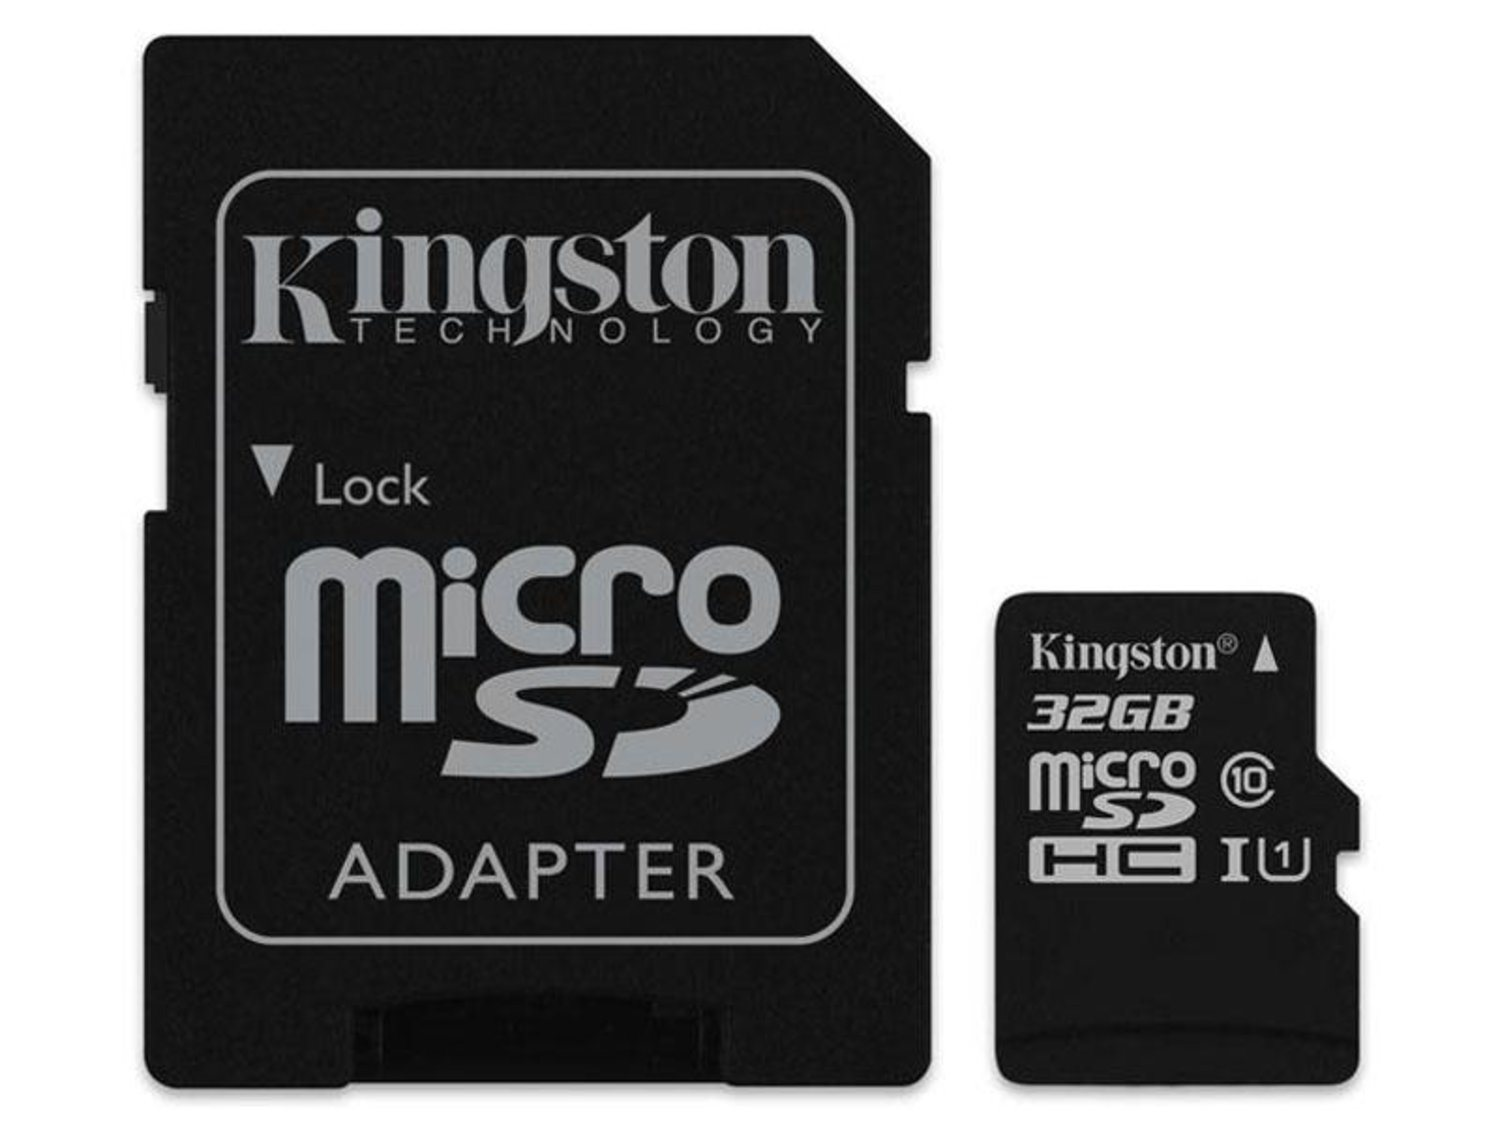 microSDHC 32gb Kingston CL10 UHS-I blister